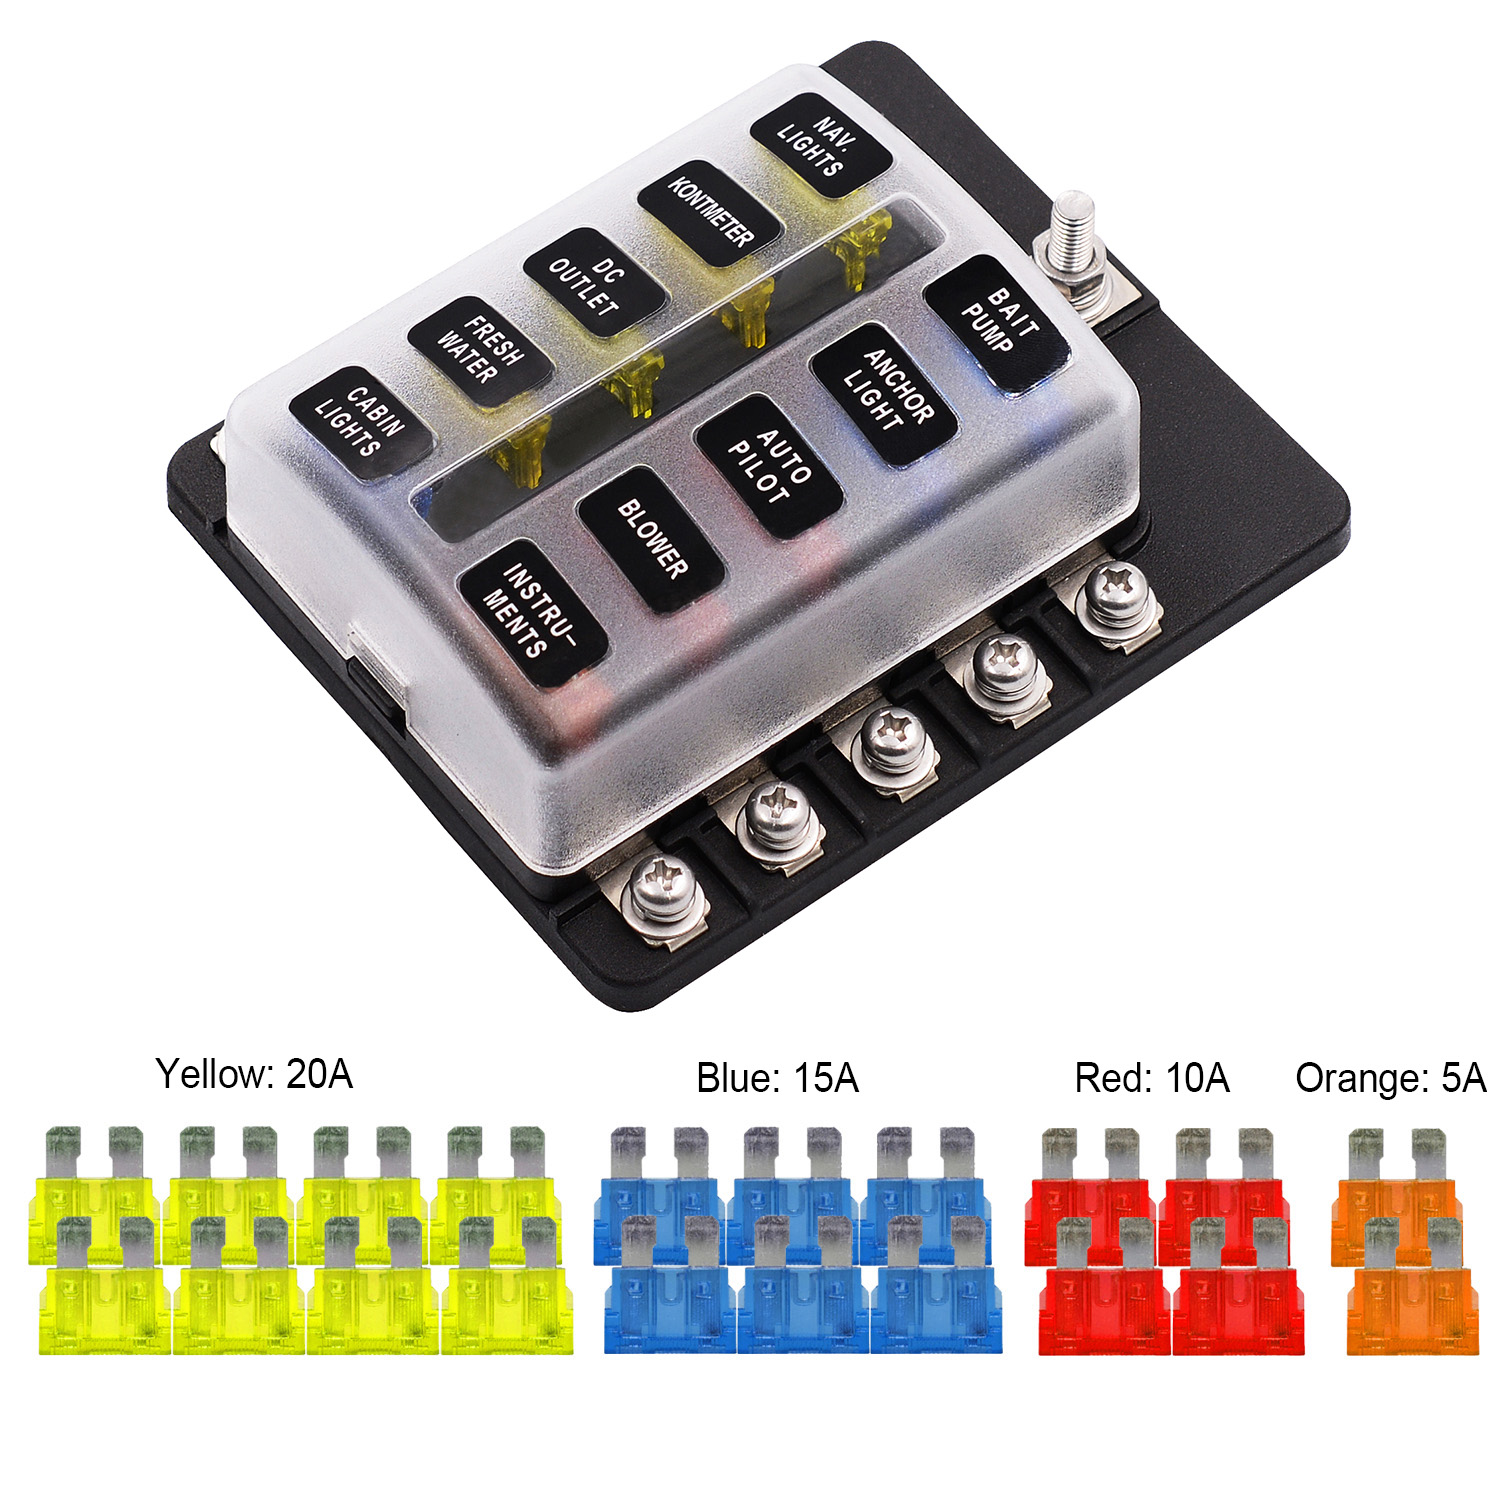 Hot Sale Promotion 10 Way Circuit Car Fuse Box Waterproof 32v Terminal Block Red Led Indicates 5a 10a 15a 20a Auto Holder